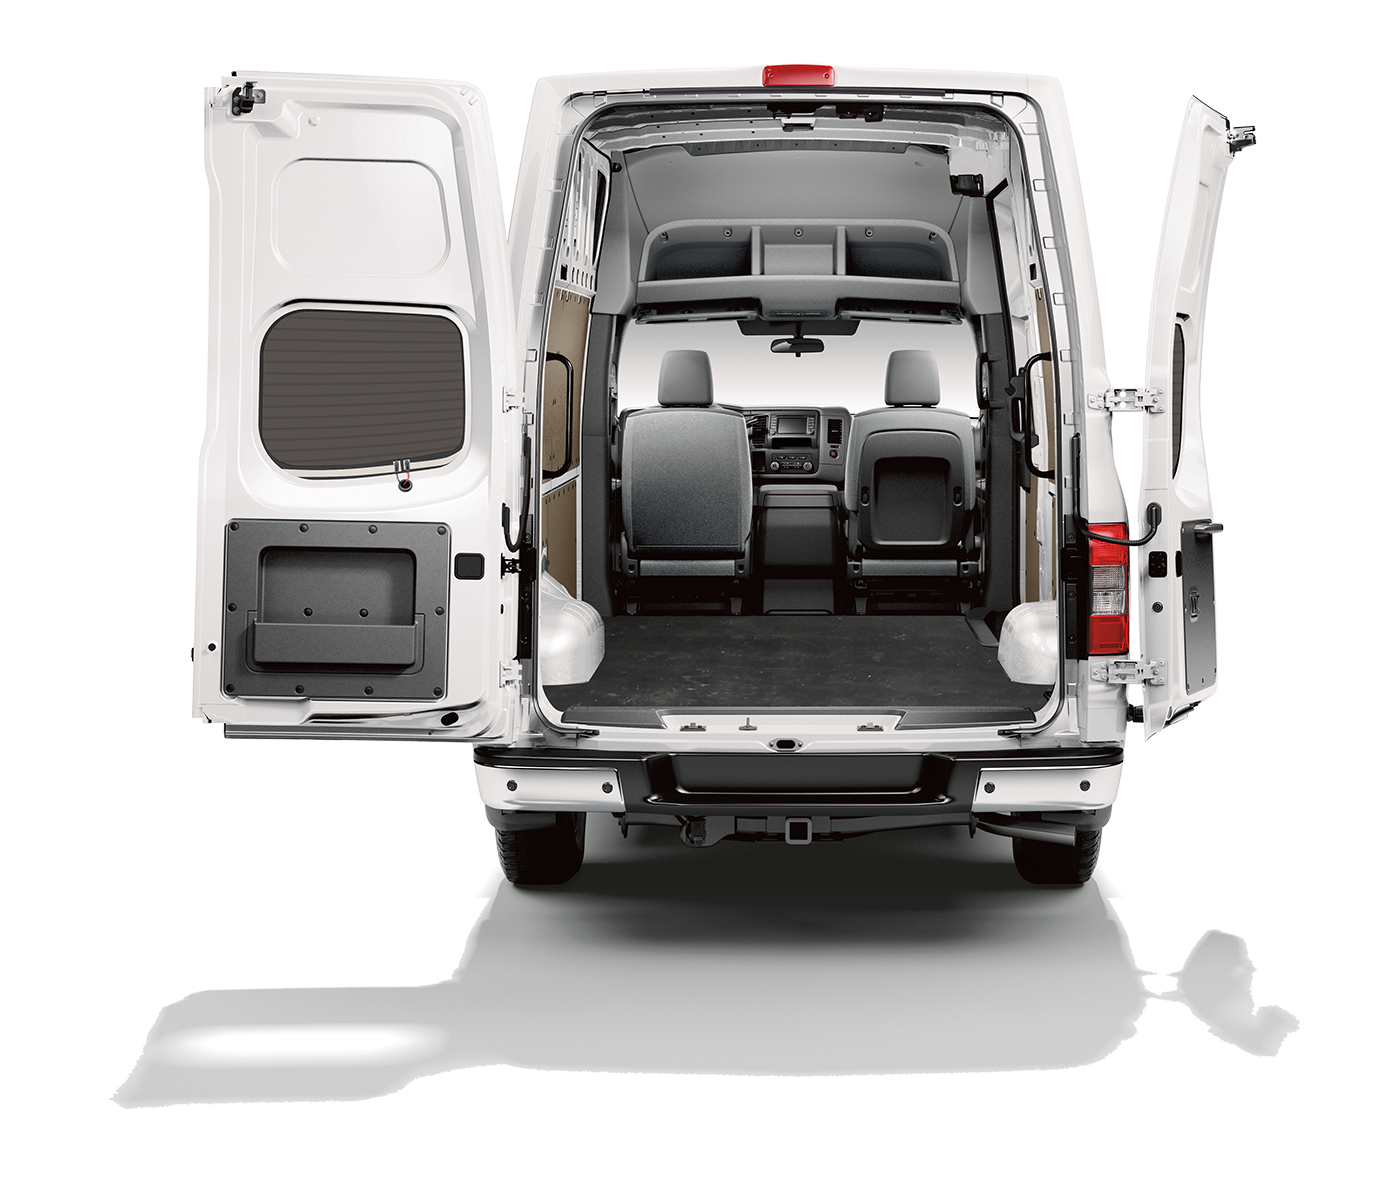 NV Cargo Offers Options for towing, shelving, racks, lighting, and insulation!